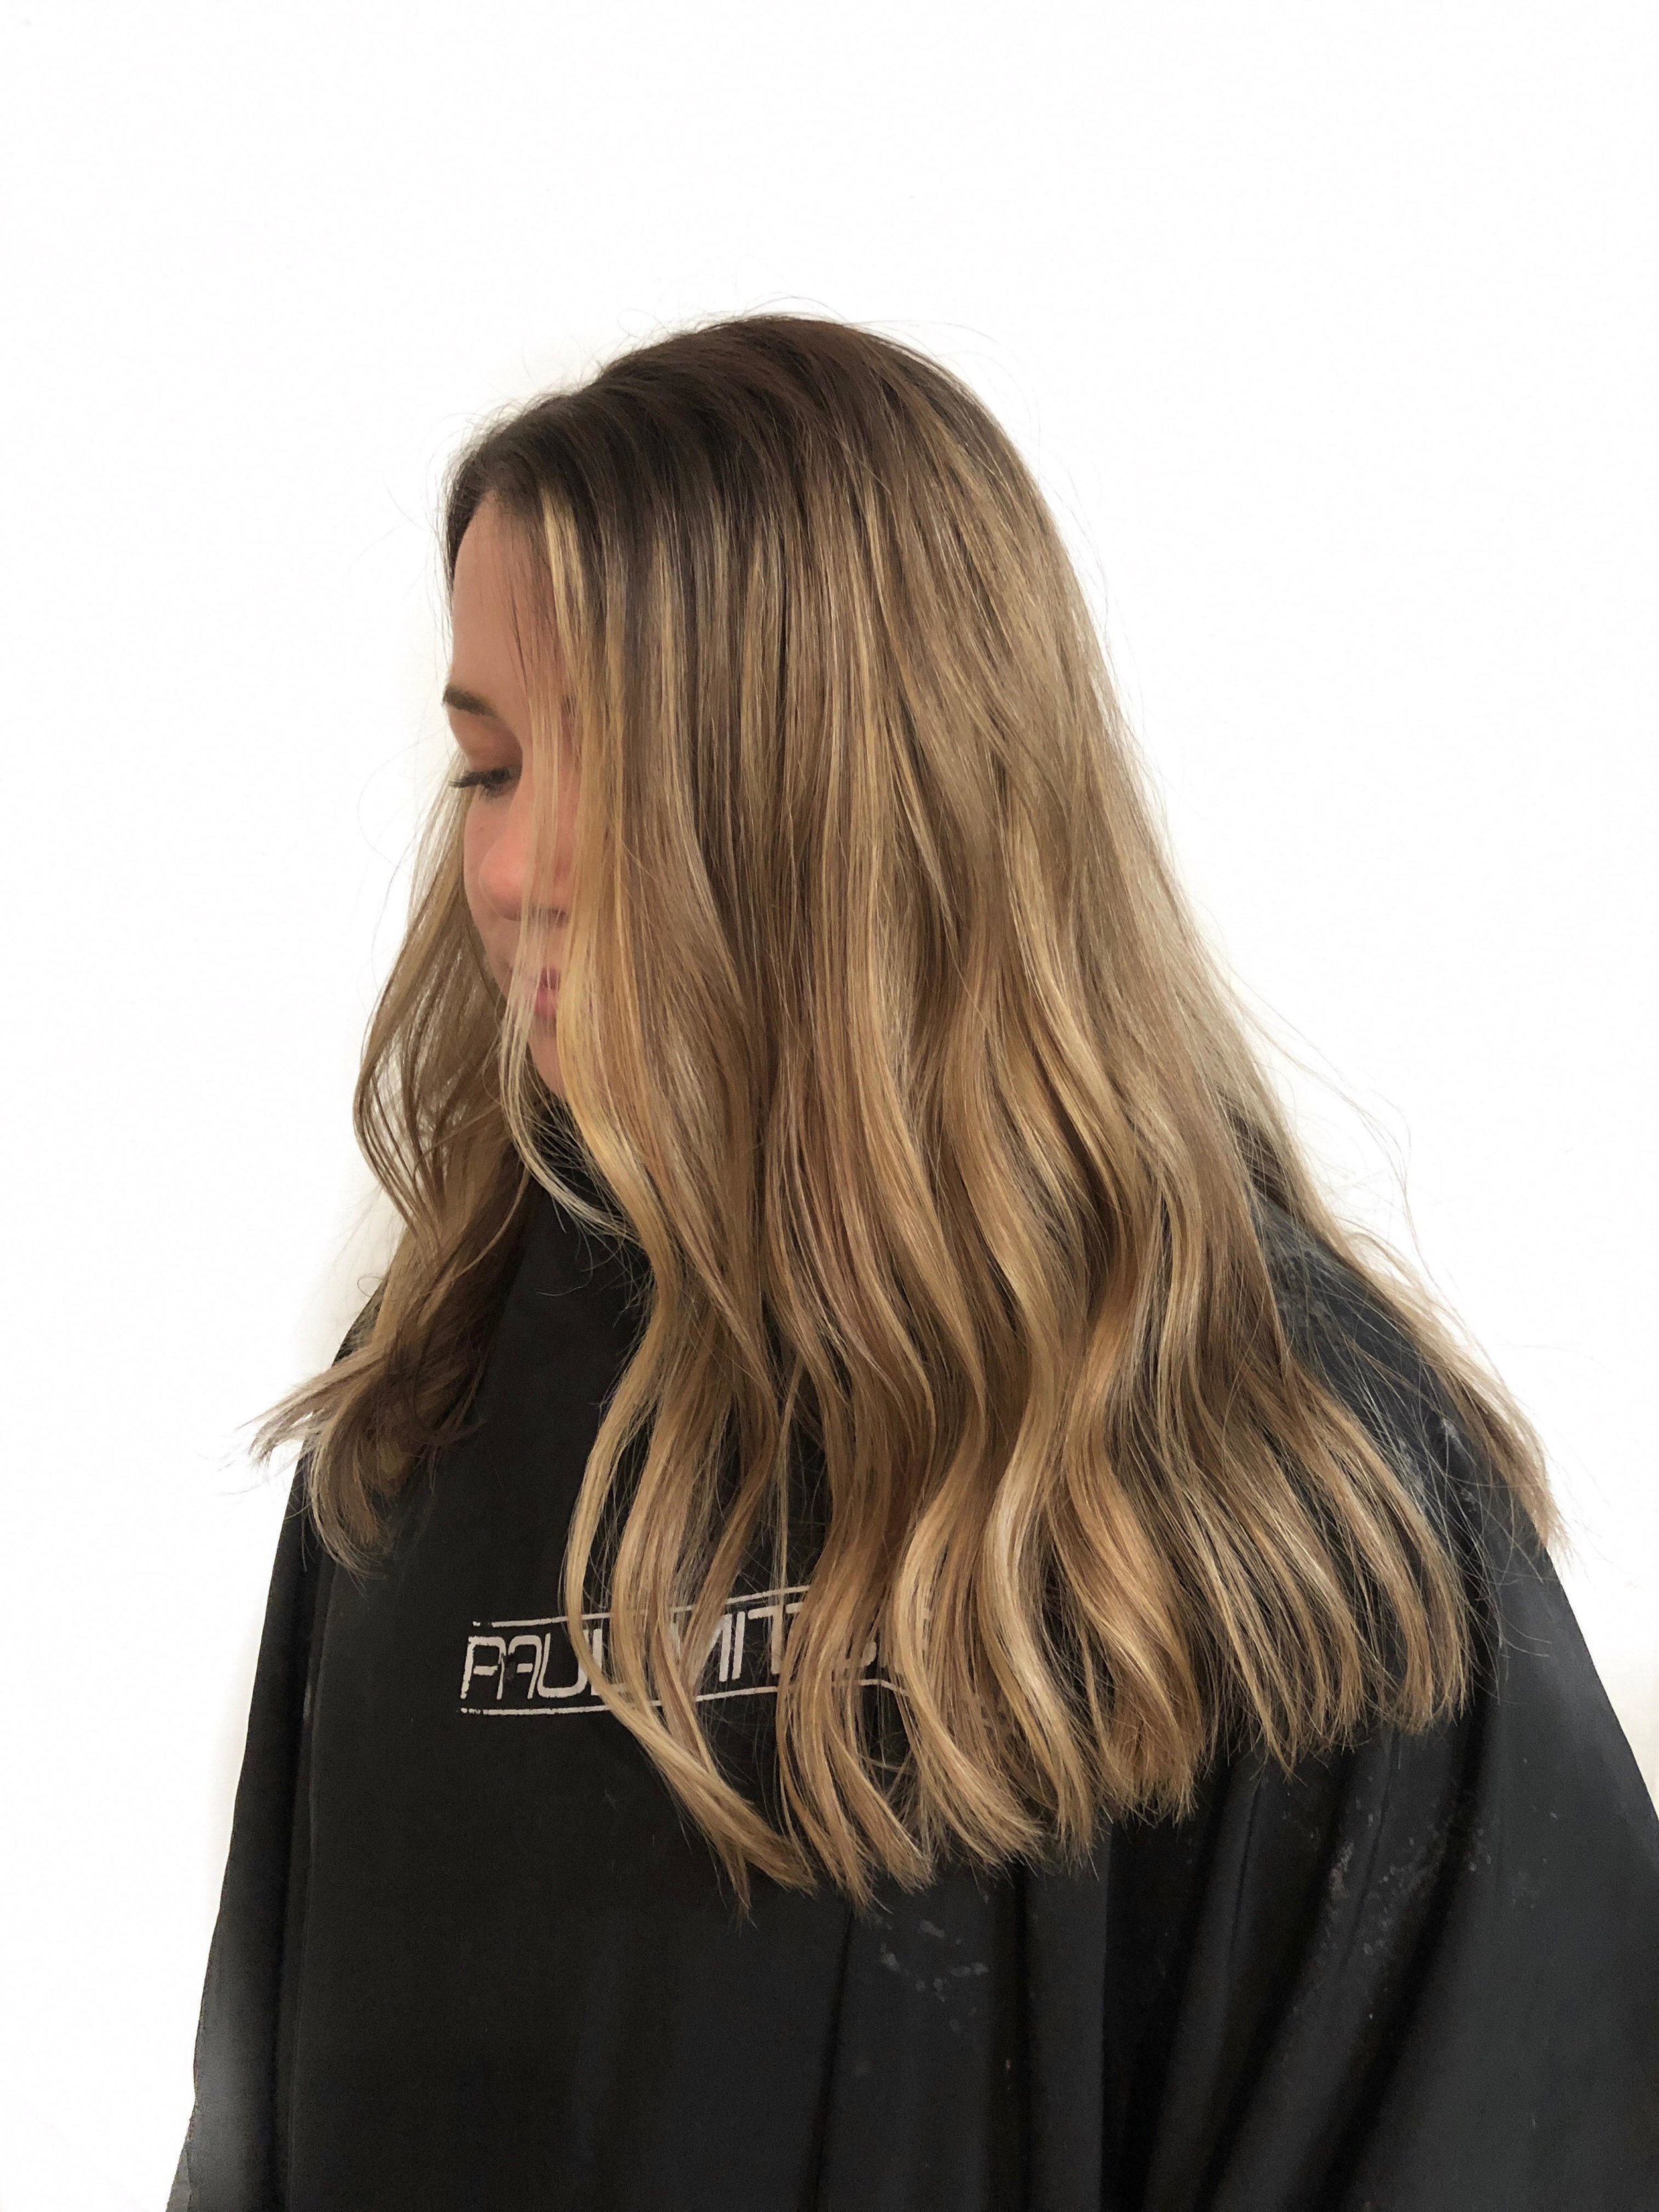 Balayage - A French colouring technique, the Balayage starts at $65 (price may vary depending on hair length and volume). We will sit down for a consultation beforehand to assess your hair and pricing for one of my favorite services that I offer/get to work my magic on!~ appt. time - 1 1/2 - 2 hours ~